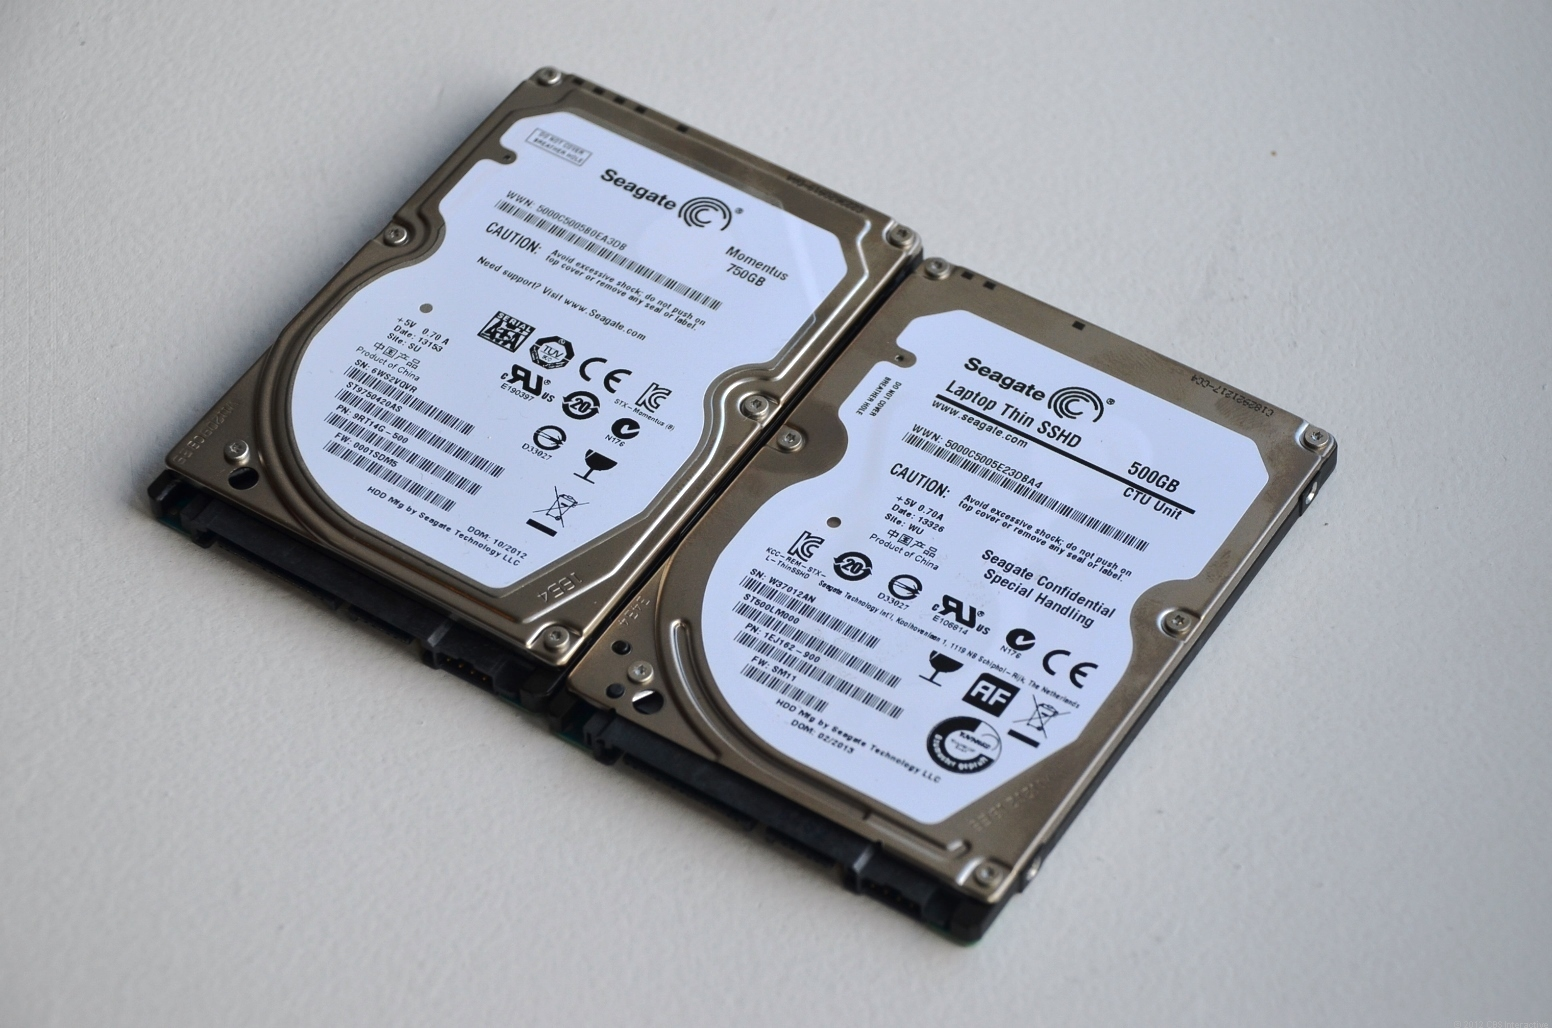 The new Laptop Thin SSHD (right) looks very similar to a Momentus regular hard drive, but 2.5mm thinner.